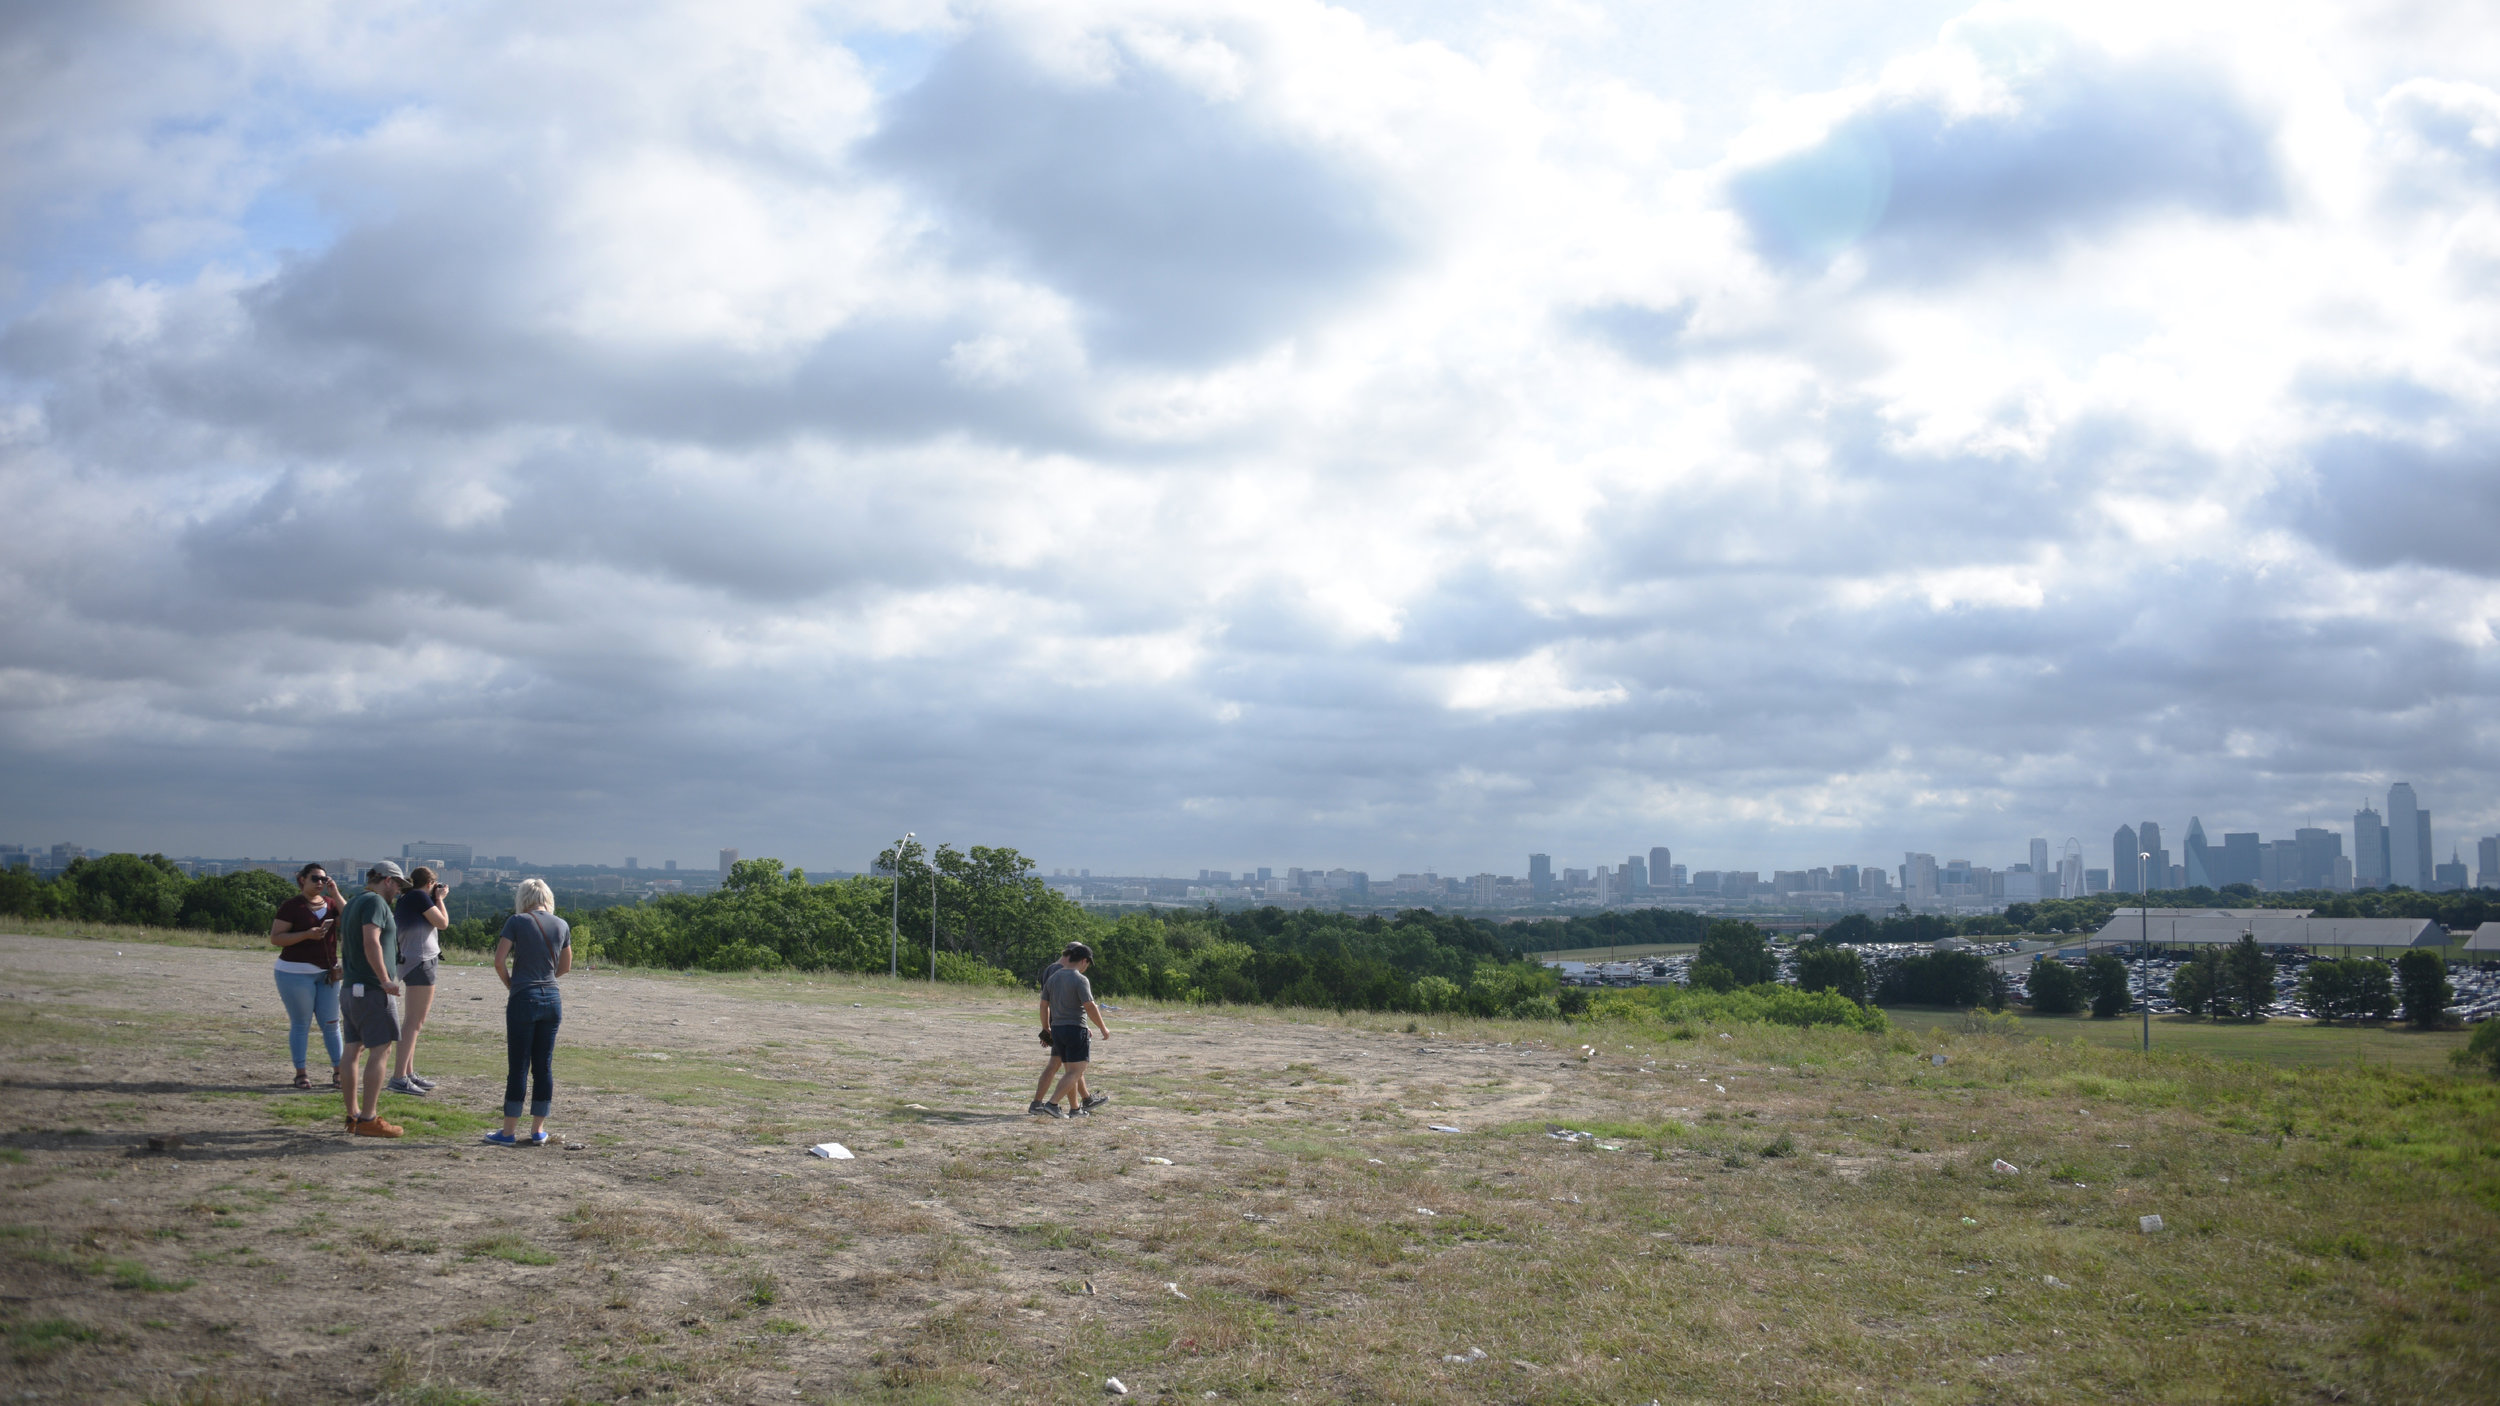 """Outsiders surveying the downtown skyline from the I-30 on-ramp overlook at Hampton Rd. AKA """"El Bordo."""" The first stop along the """"gateways"""" tour."""